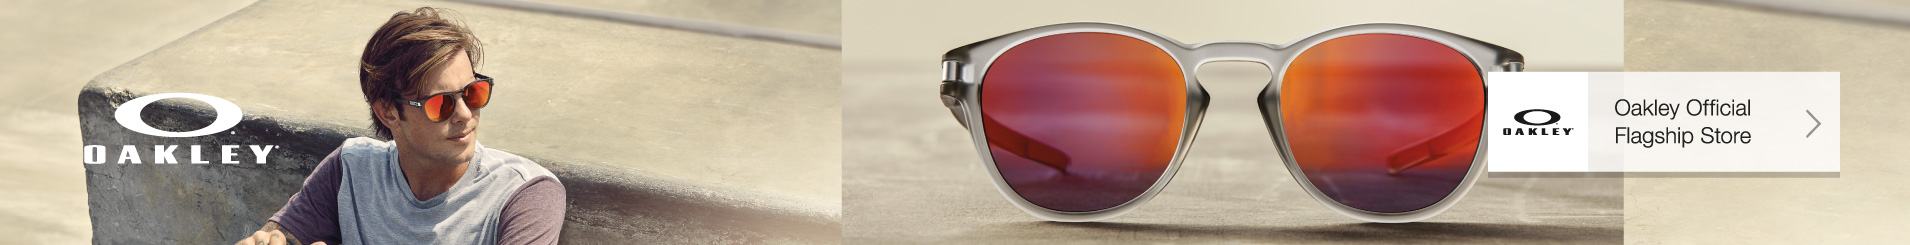 oakley shades for sale ph